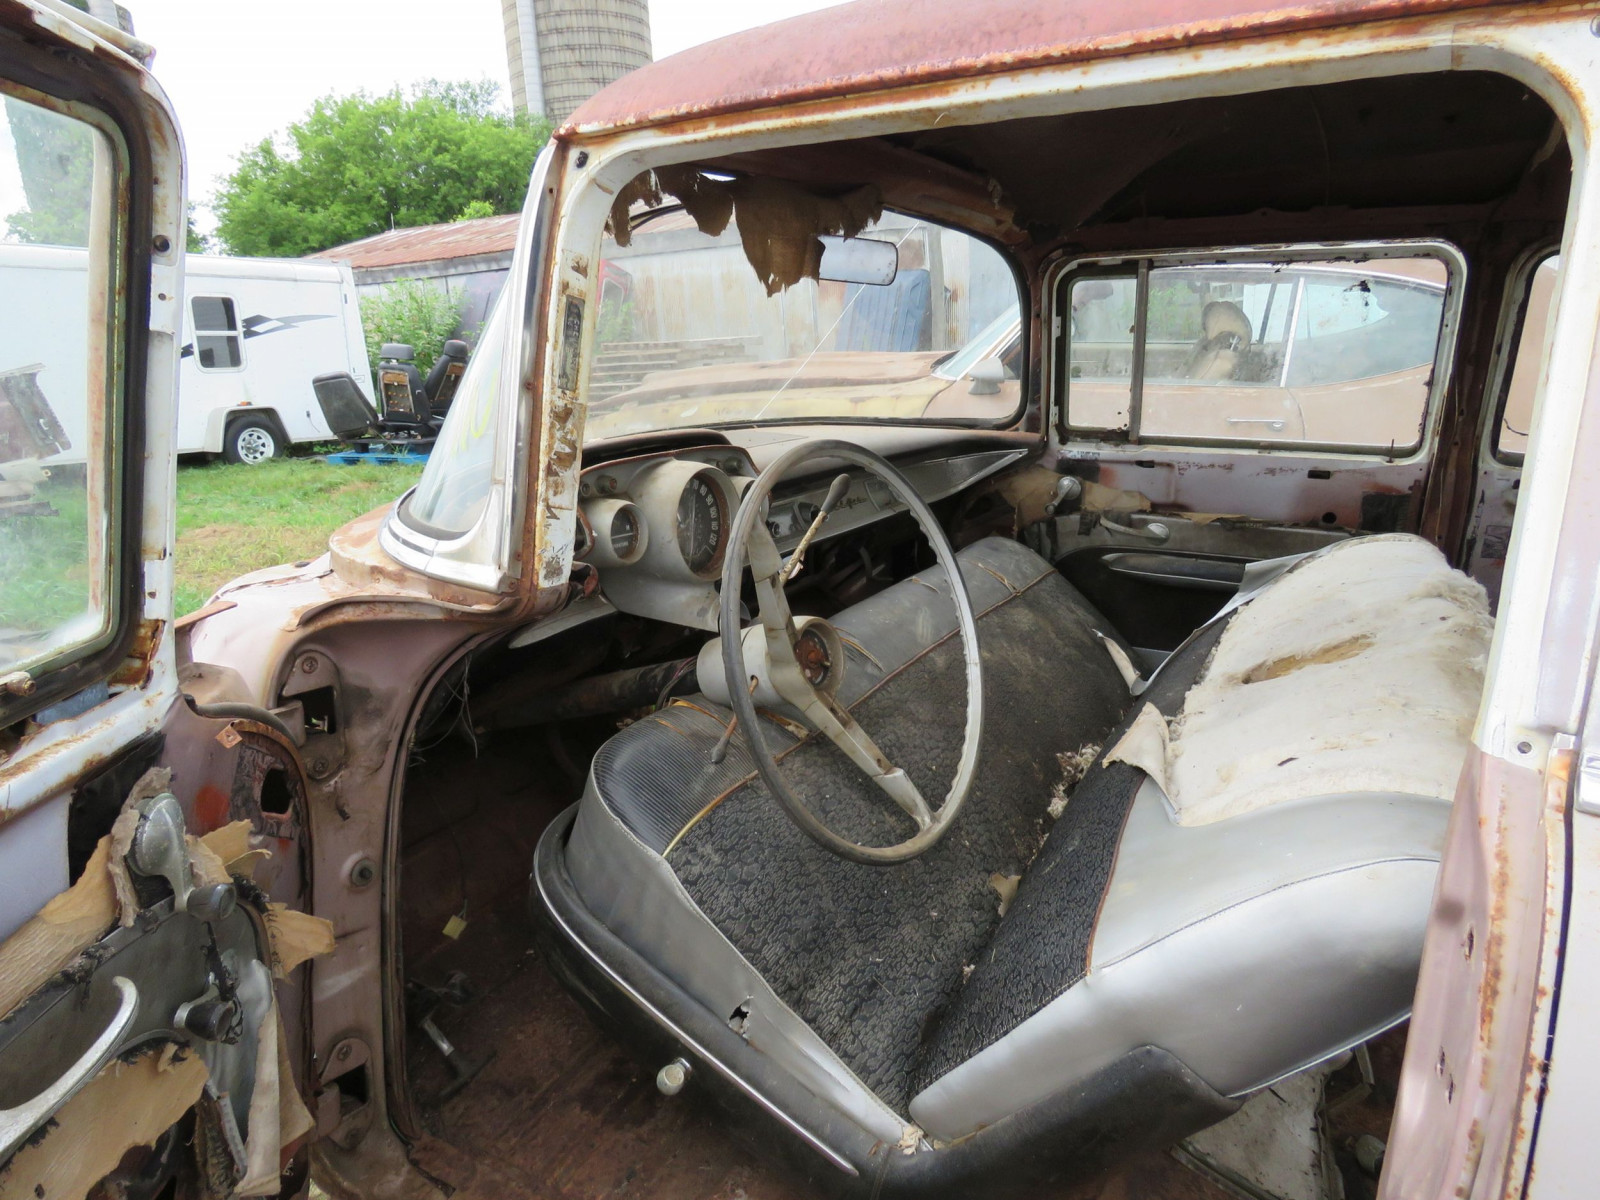 1957 Chevrolet 4dr Sedan for Rod or Restore - Image 7